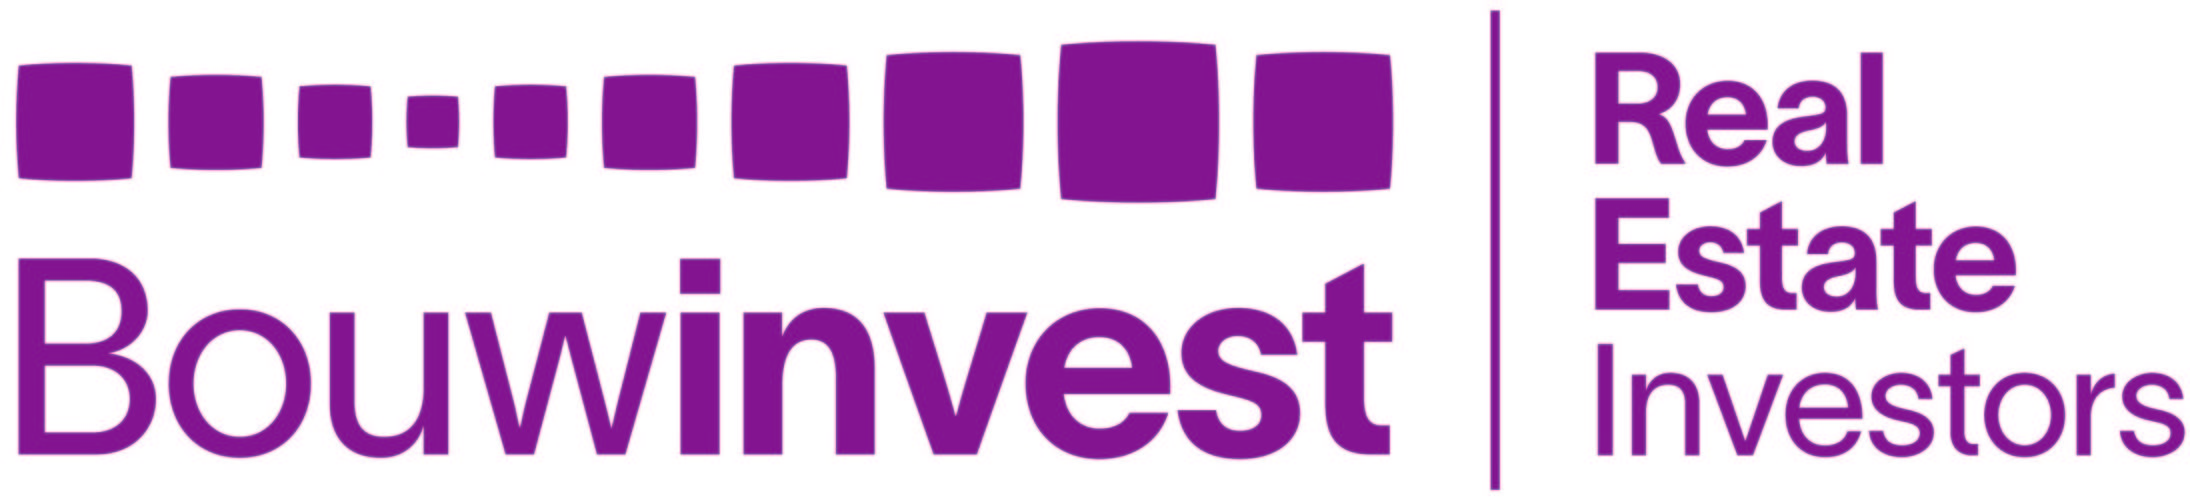 Bouwinvest Real Estate Investors